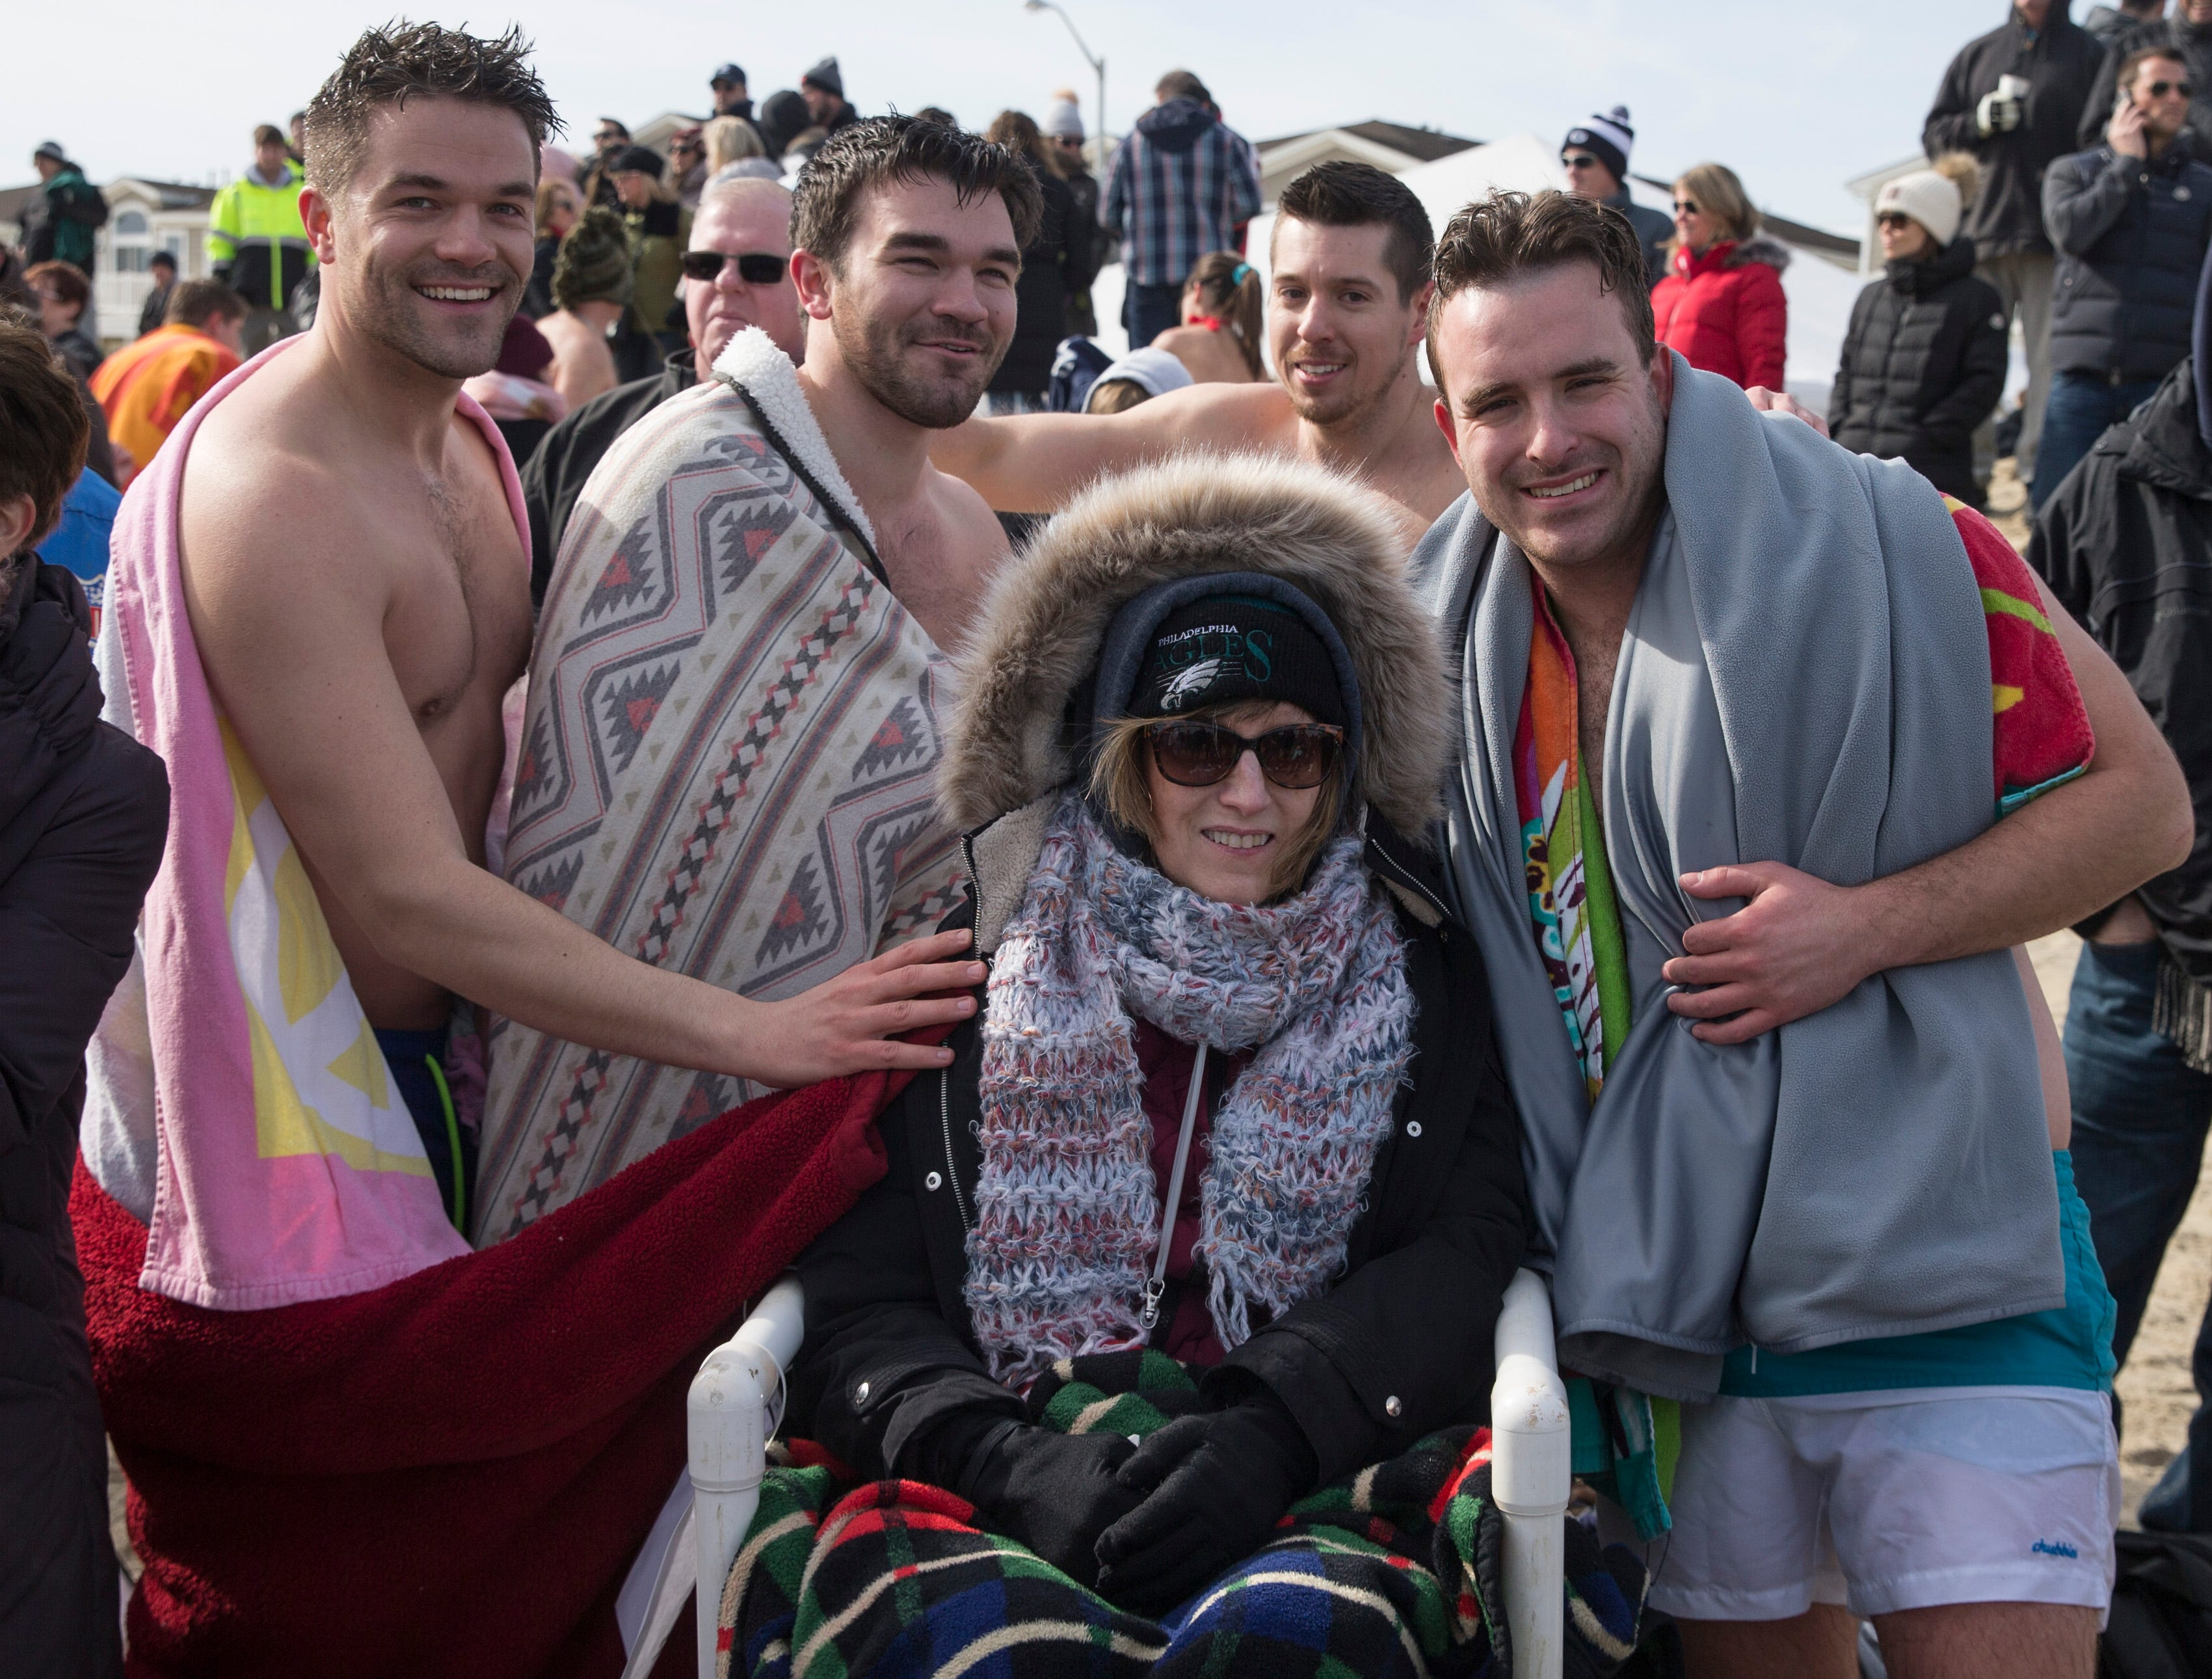 Julie Camastra of Ewing, center, is surrounded by friends and family who support her. The annual Valentine Plunge to raise funds for Joan Dancy and P.A.L.S., which raises money to support local people with ALS (Lou Gehrig's disease), takes place at Manasquan Beach.       Manasquan, NJSaturday, February 2, 2019